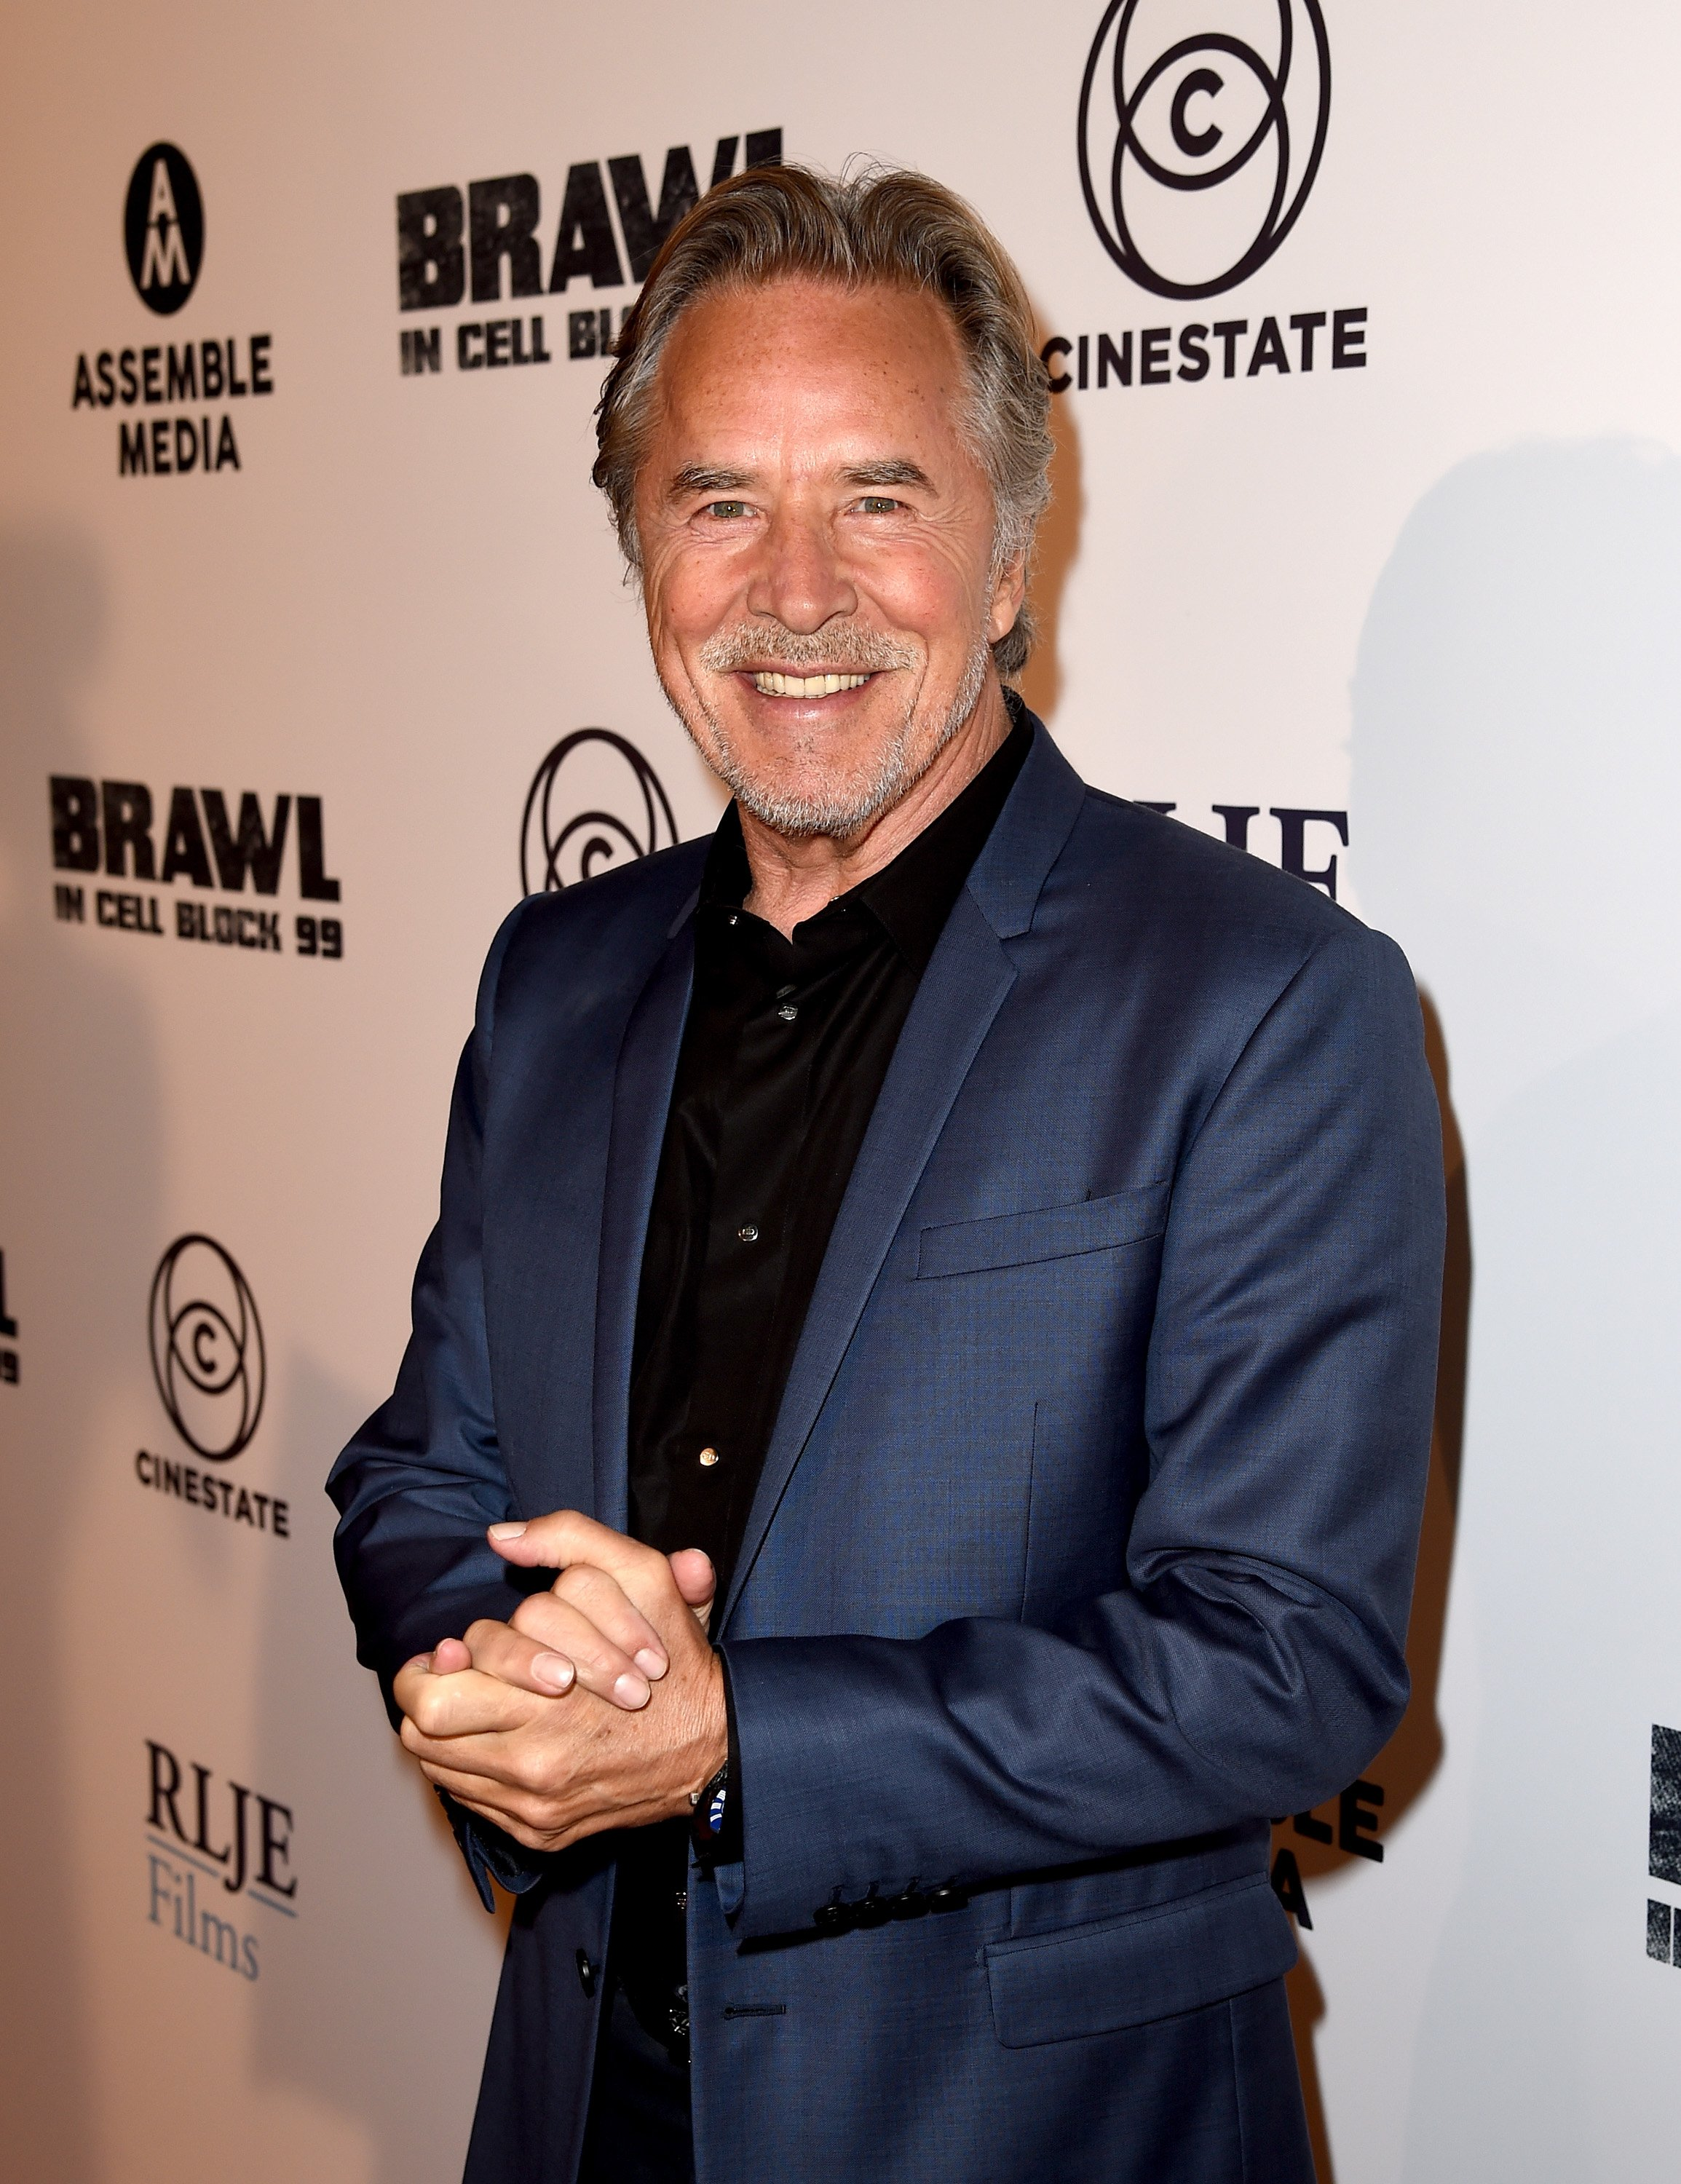 """Don Johnson attends the premiere of """"Brawl In Cell Block 99"""" in Los Angeles, California on September 29, 2017 